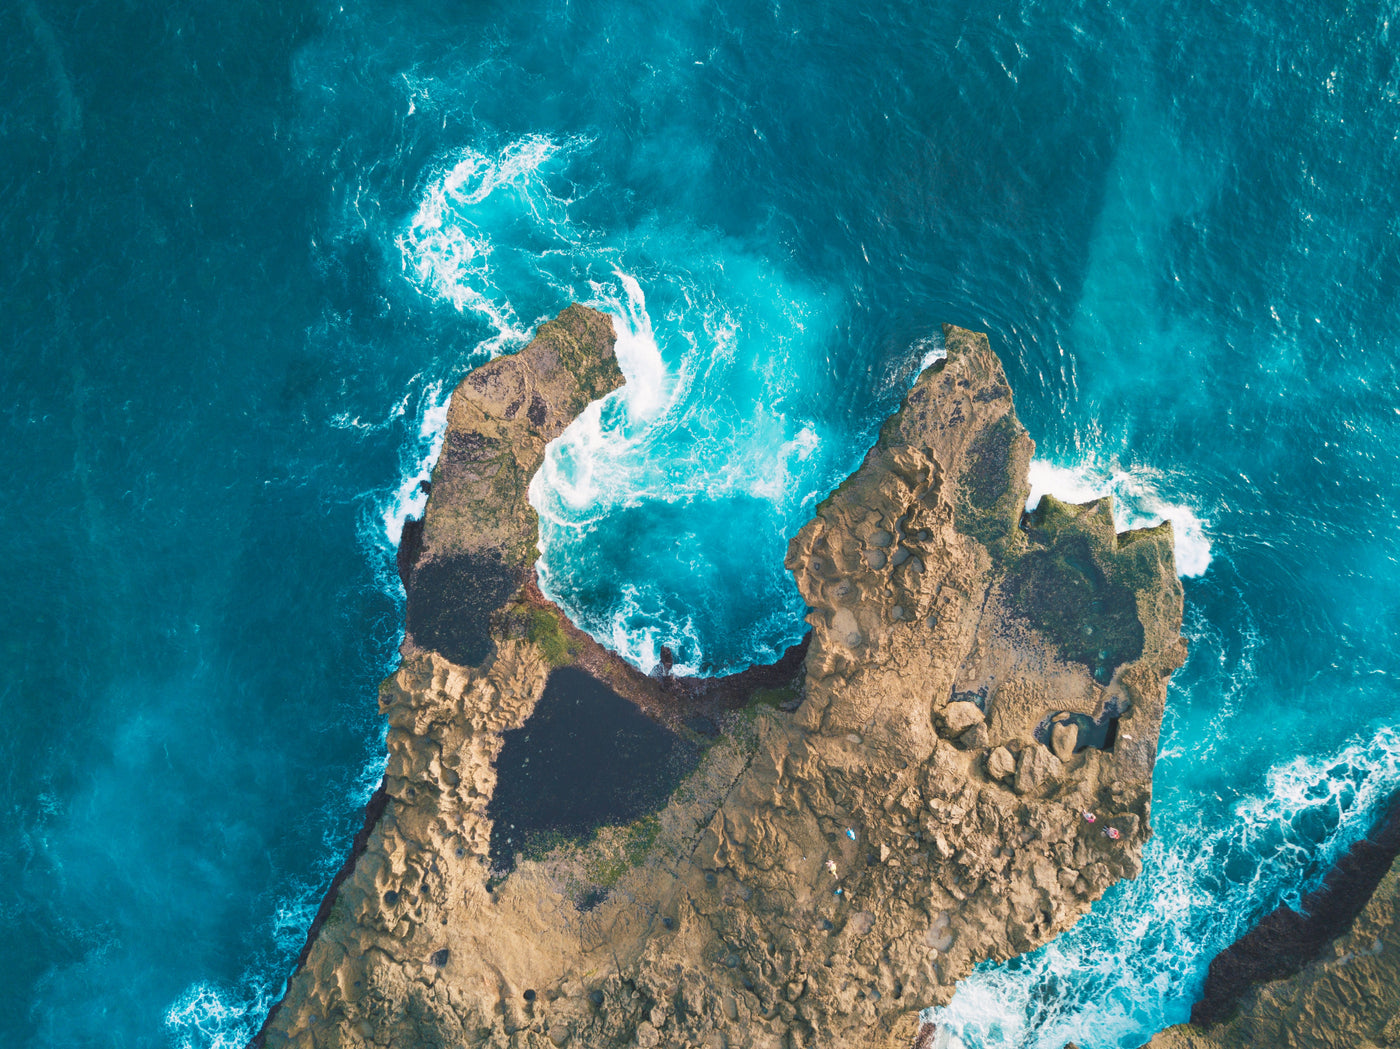 Aerial photography of rock formation in ocean